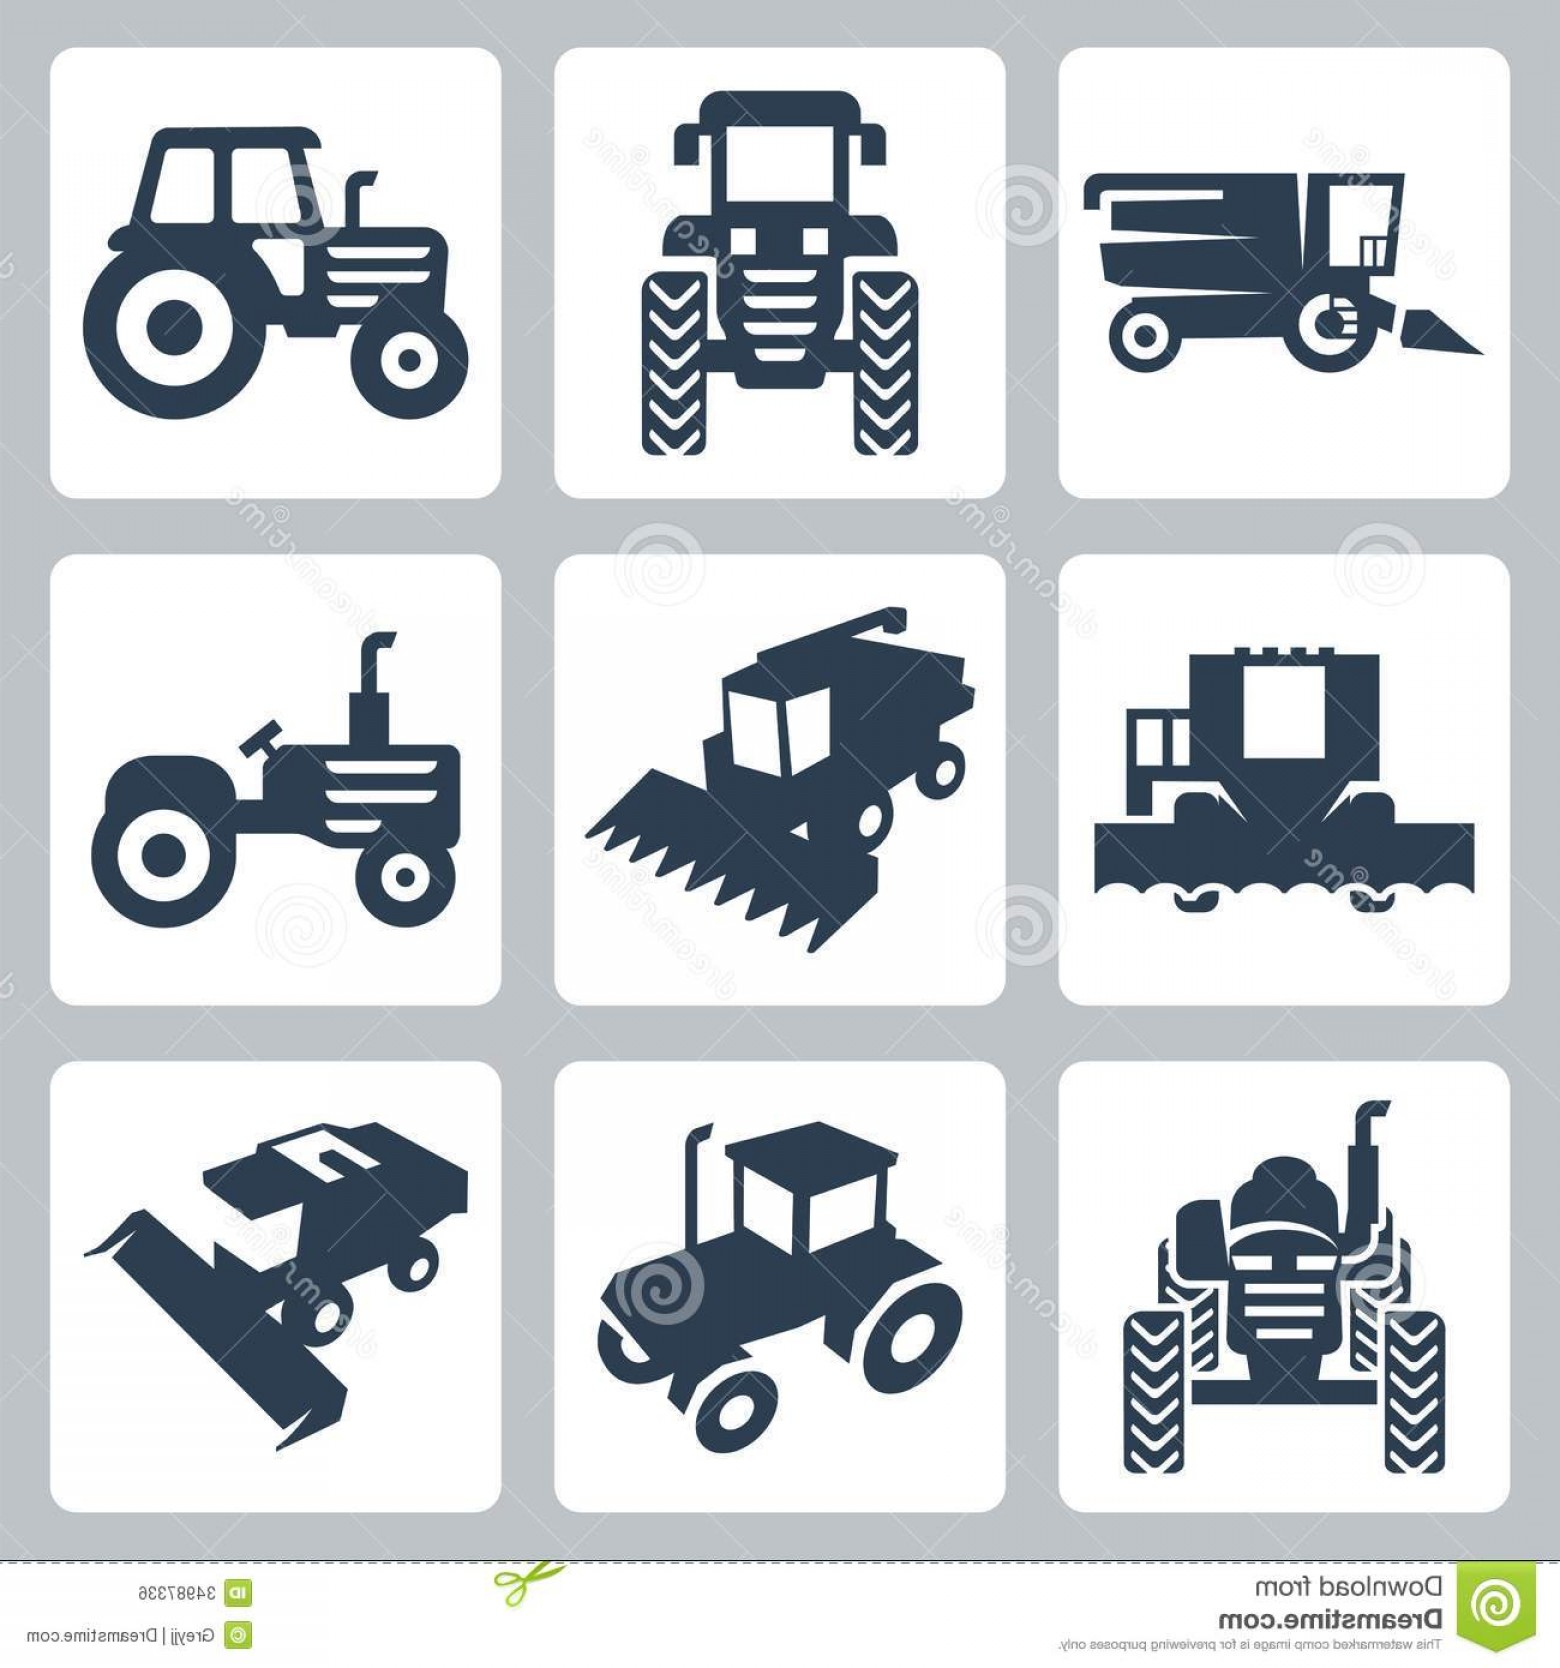 Tractor Silhouette Vector Art: Royalty Free Stock Image Vector Tractor Combine Harvester Icons Image